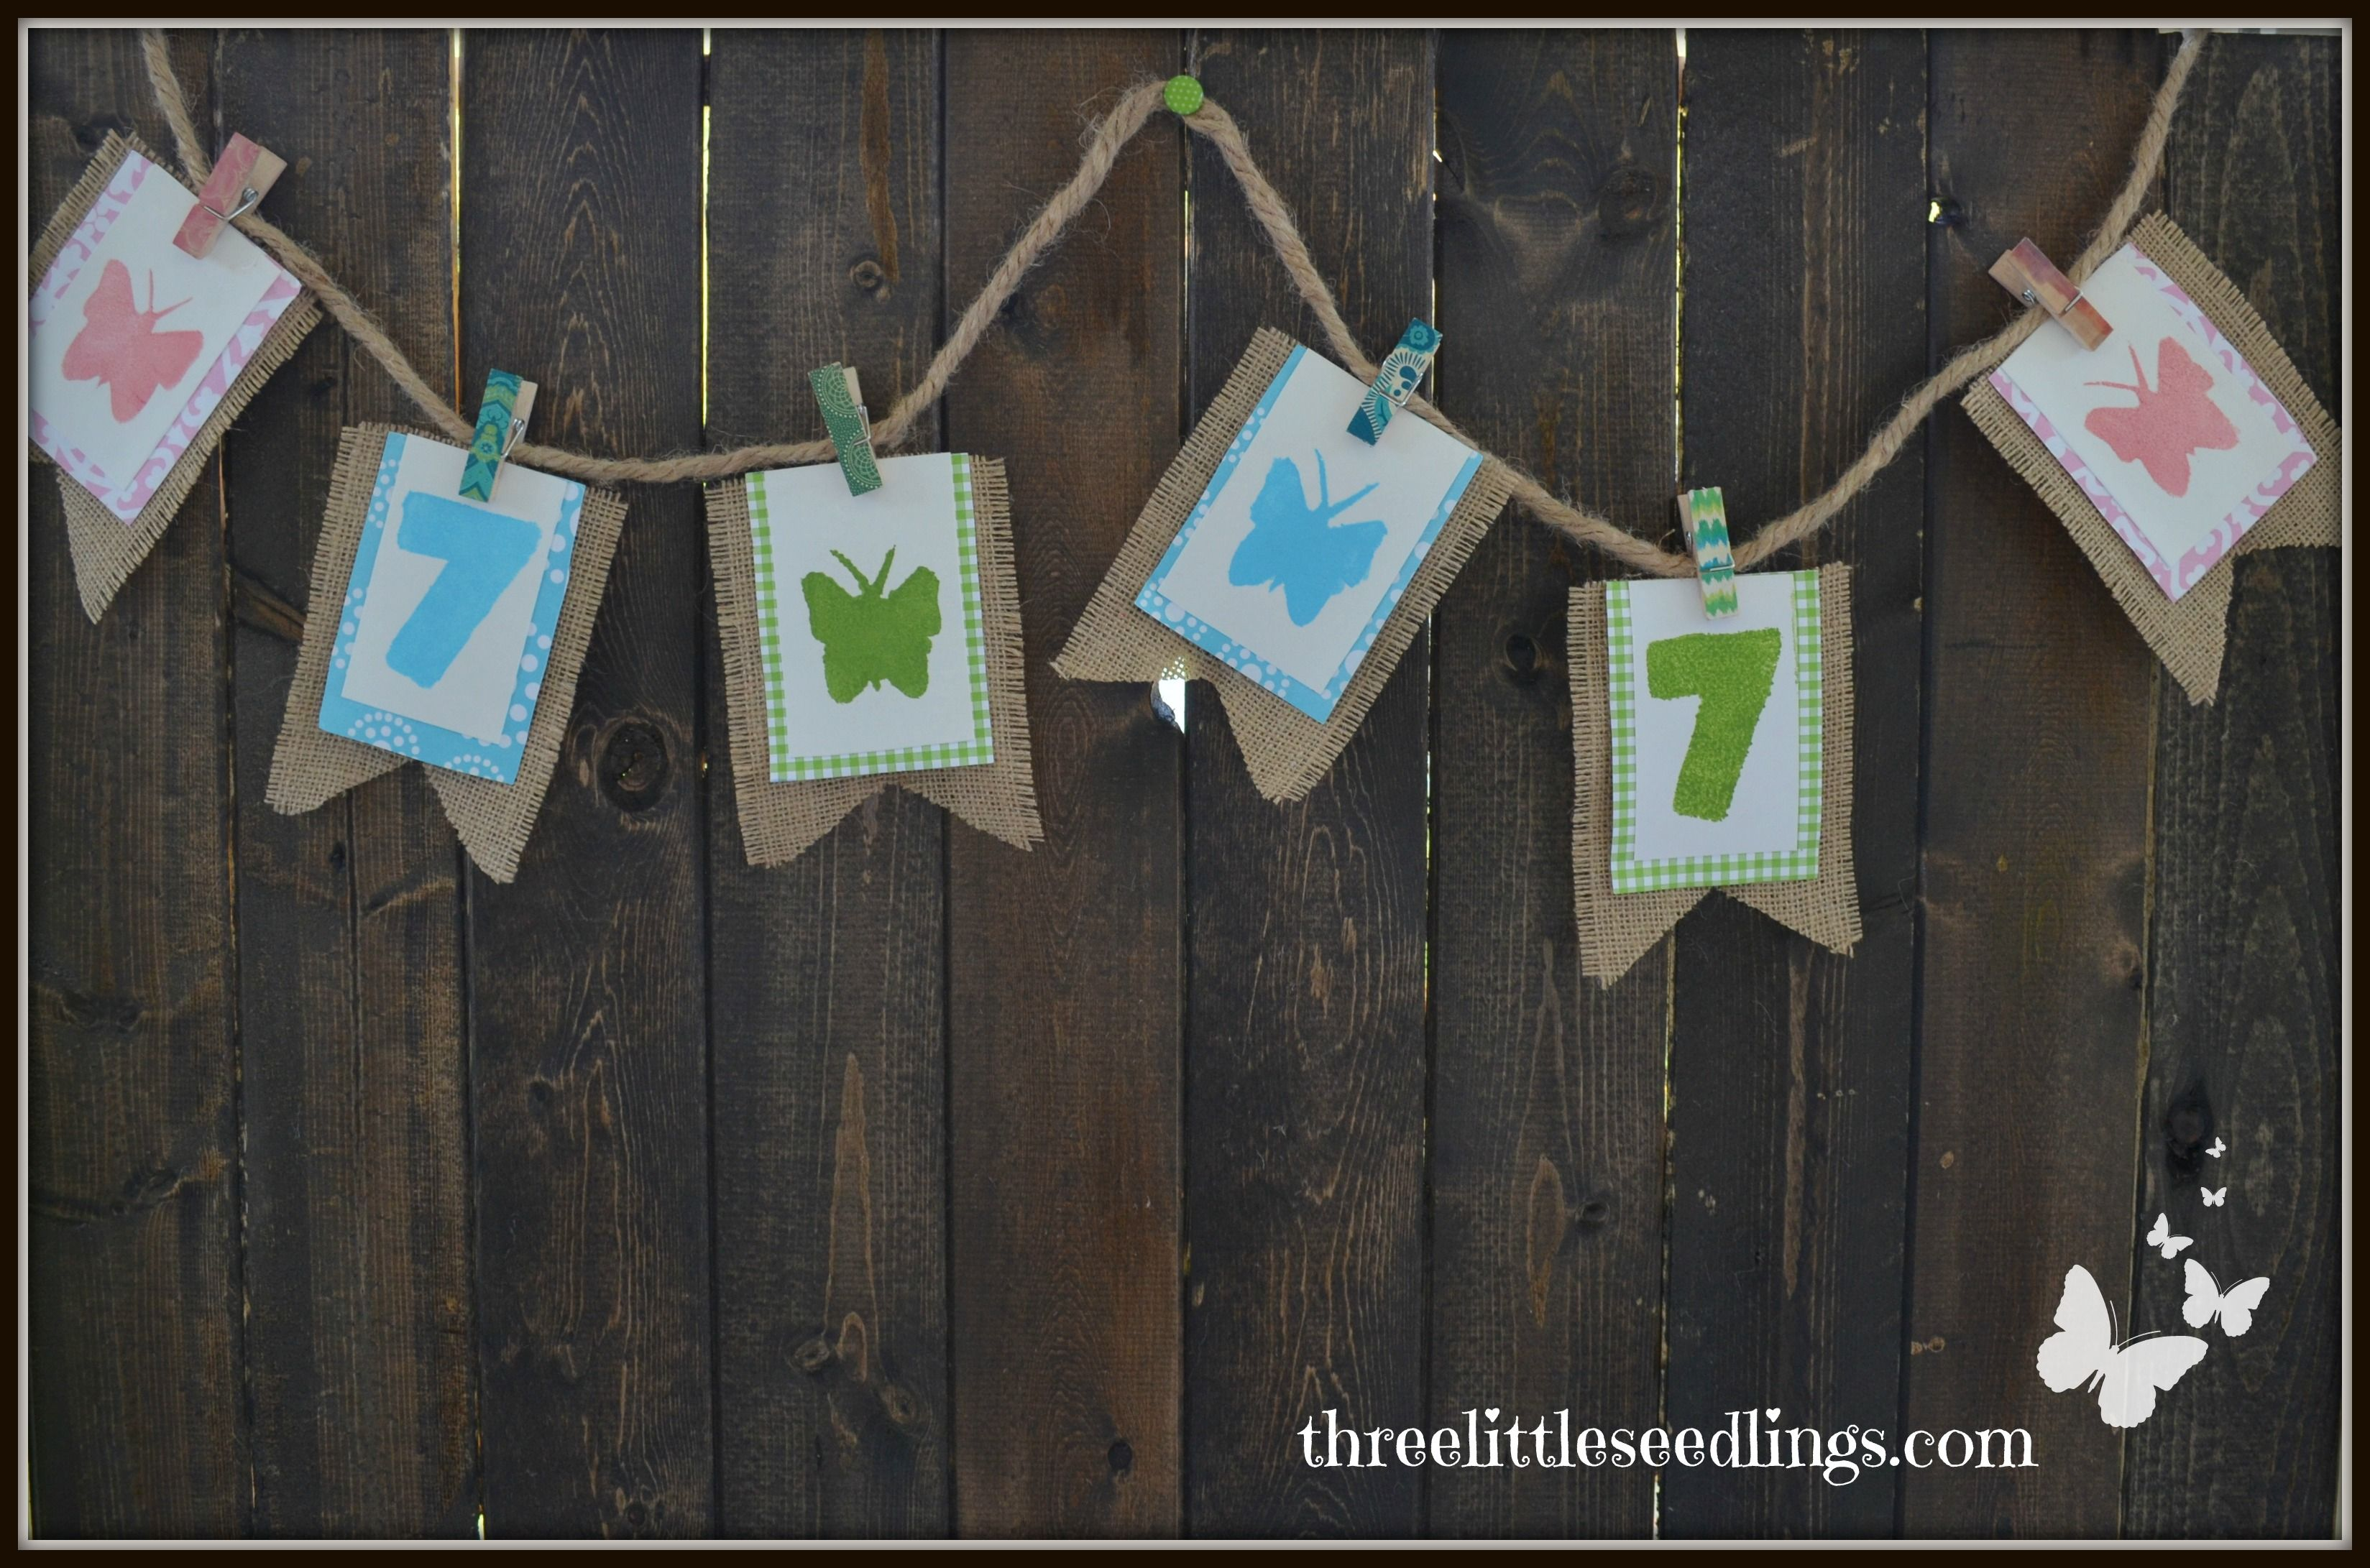 Diy birthday banner three little seedlings www diy birthday solutioingenieria Images